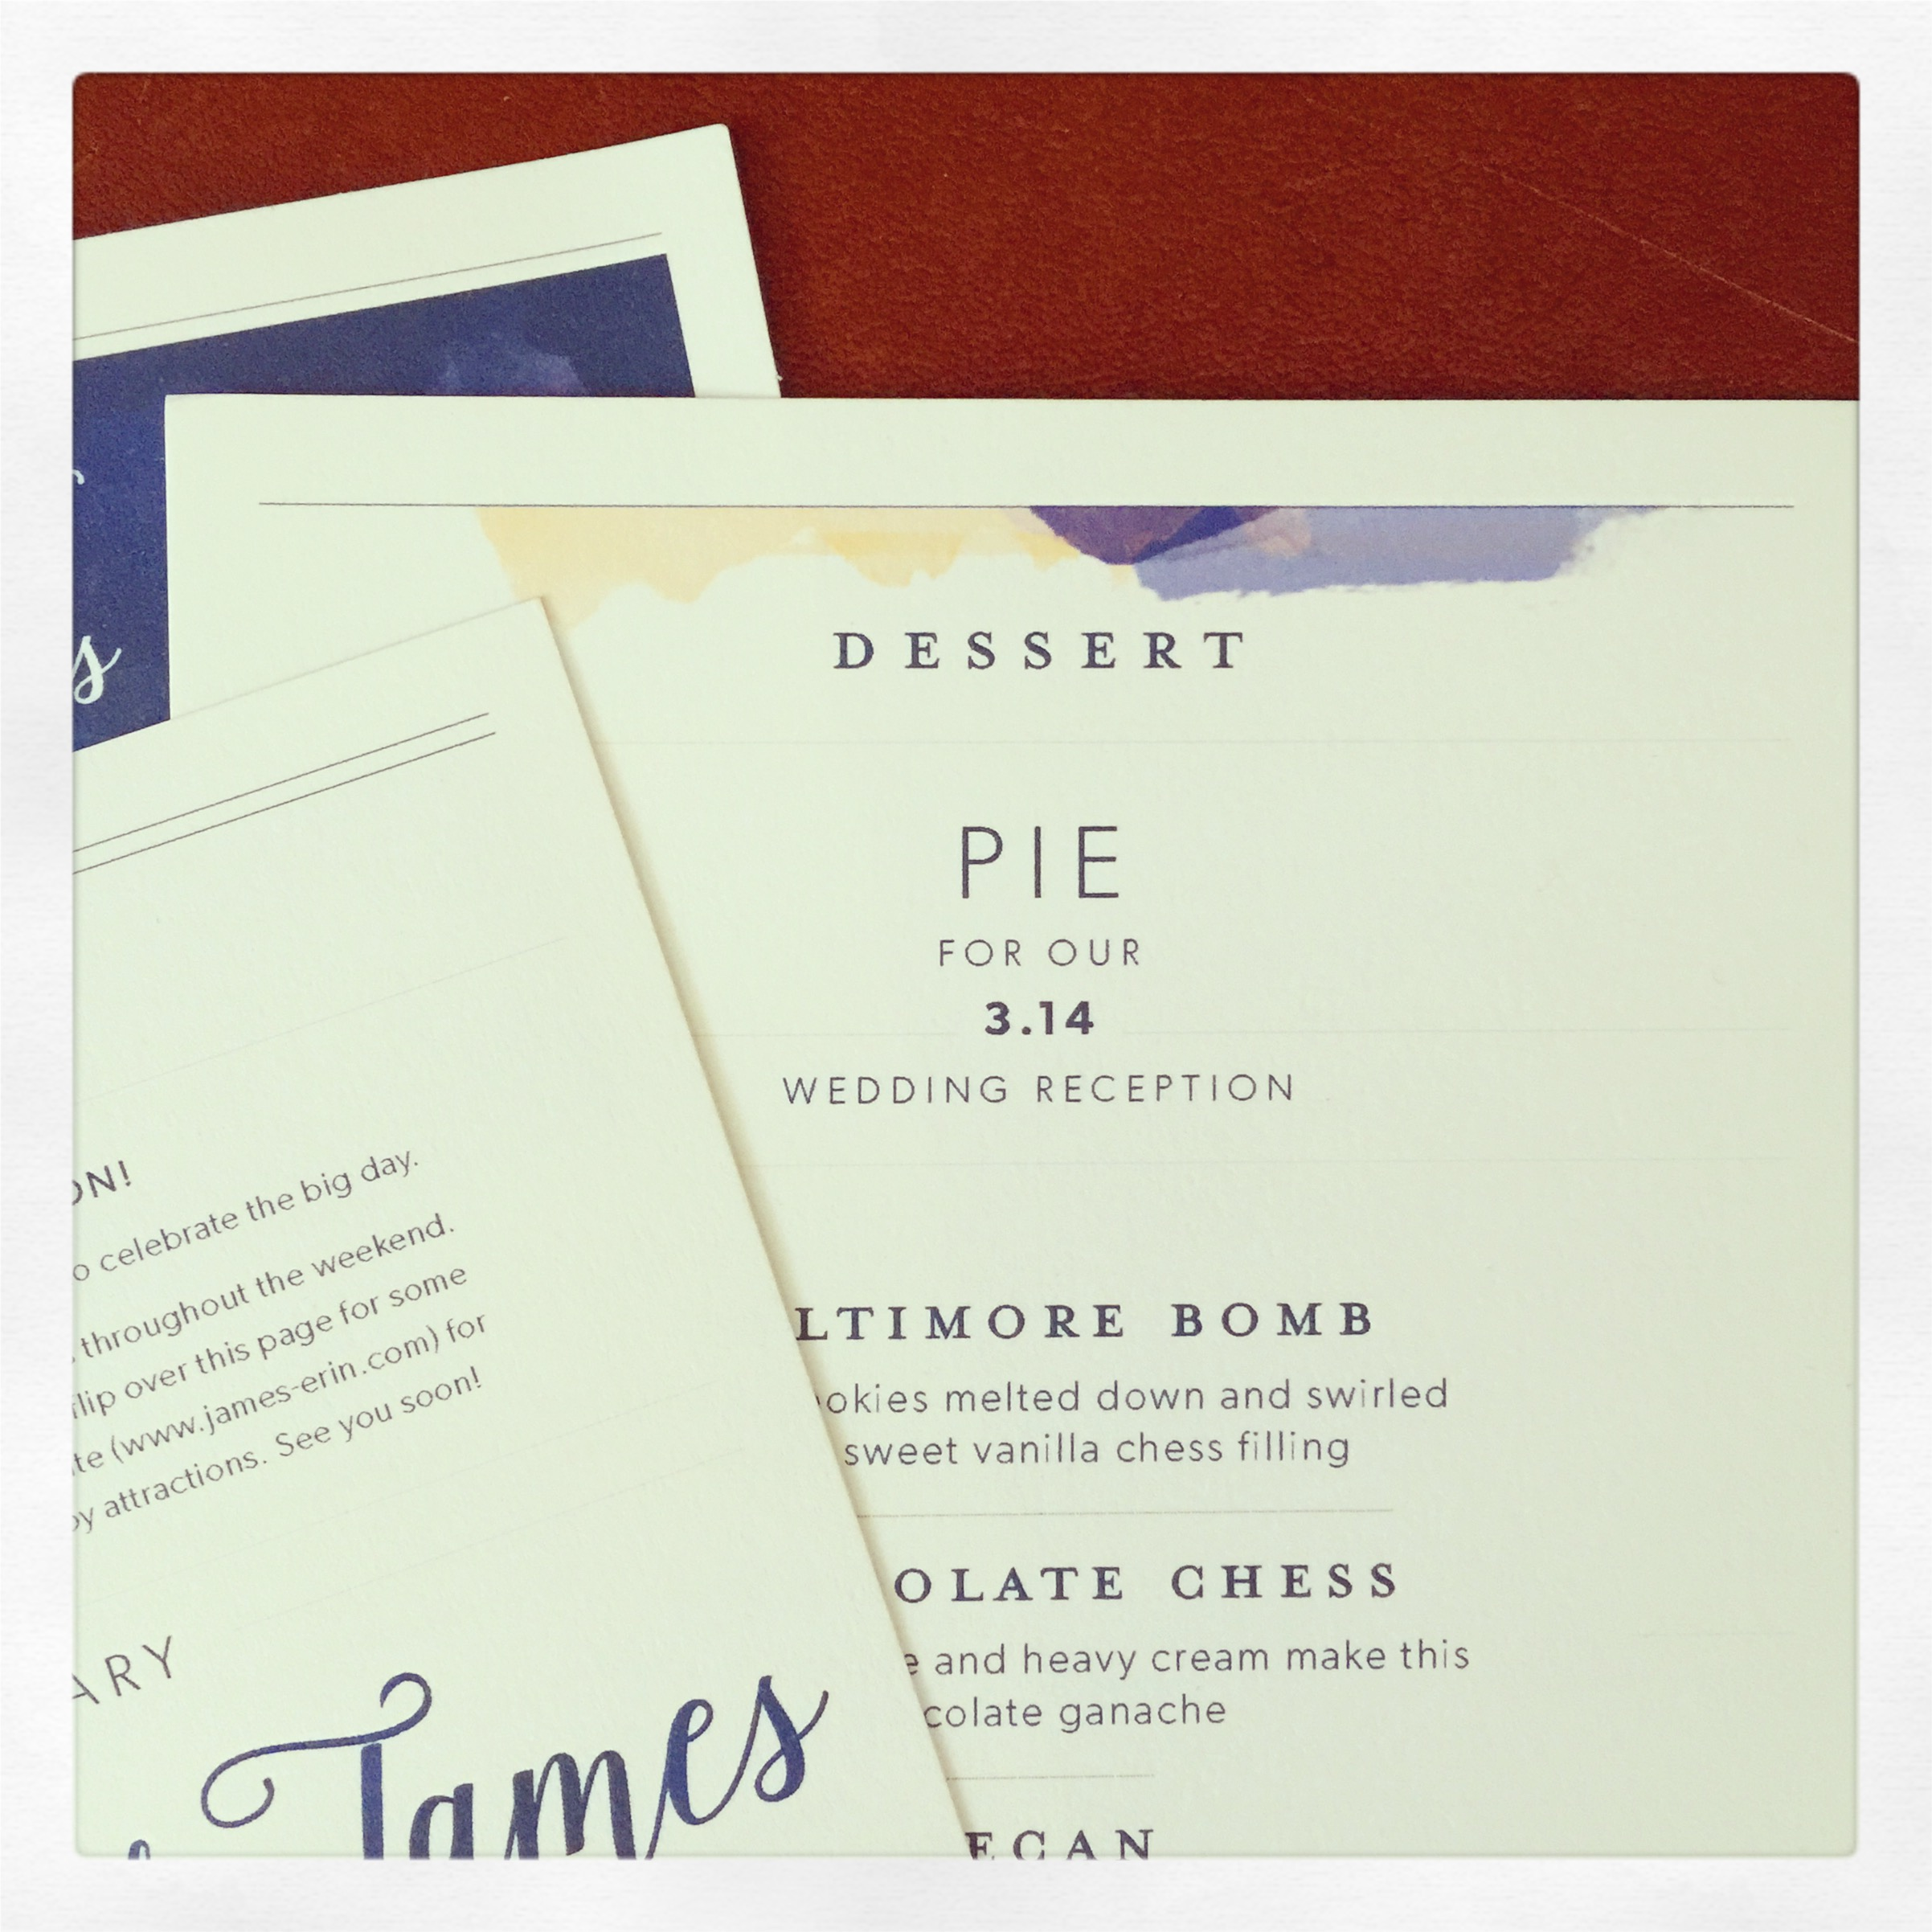 One of my adorably nerdy couples is getting married this weekend—because it's Pi Day! God, I love that.